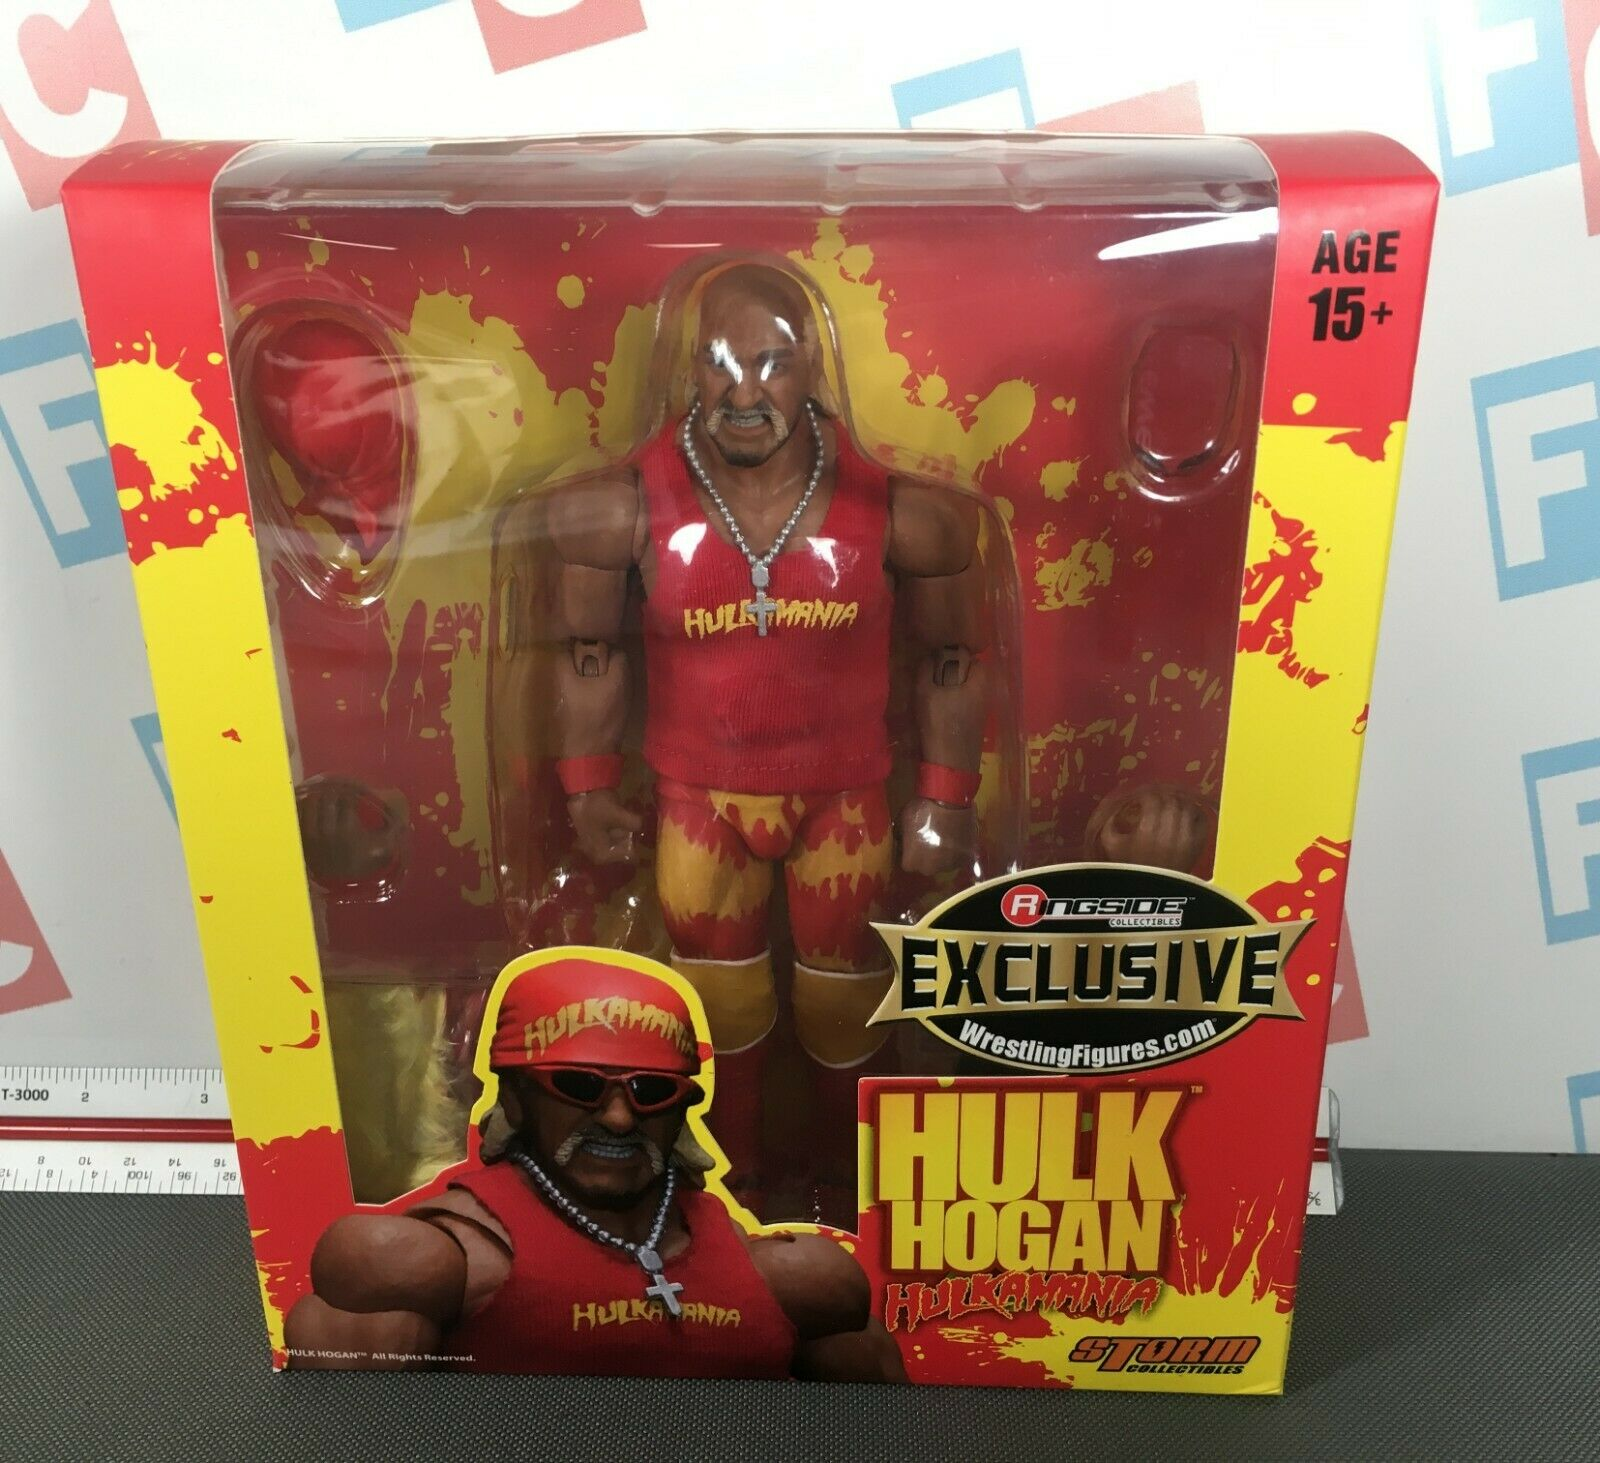 WWE Wrestling Storm Collectibles 112 Scale Series rosso Hulk Hogan cifra